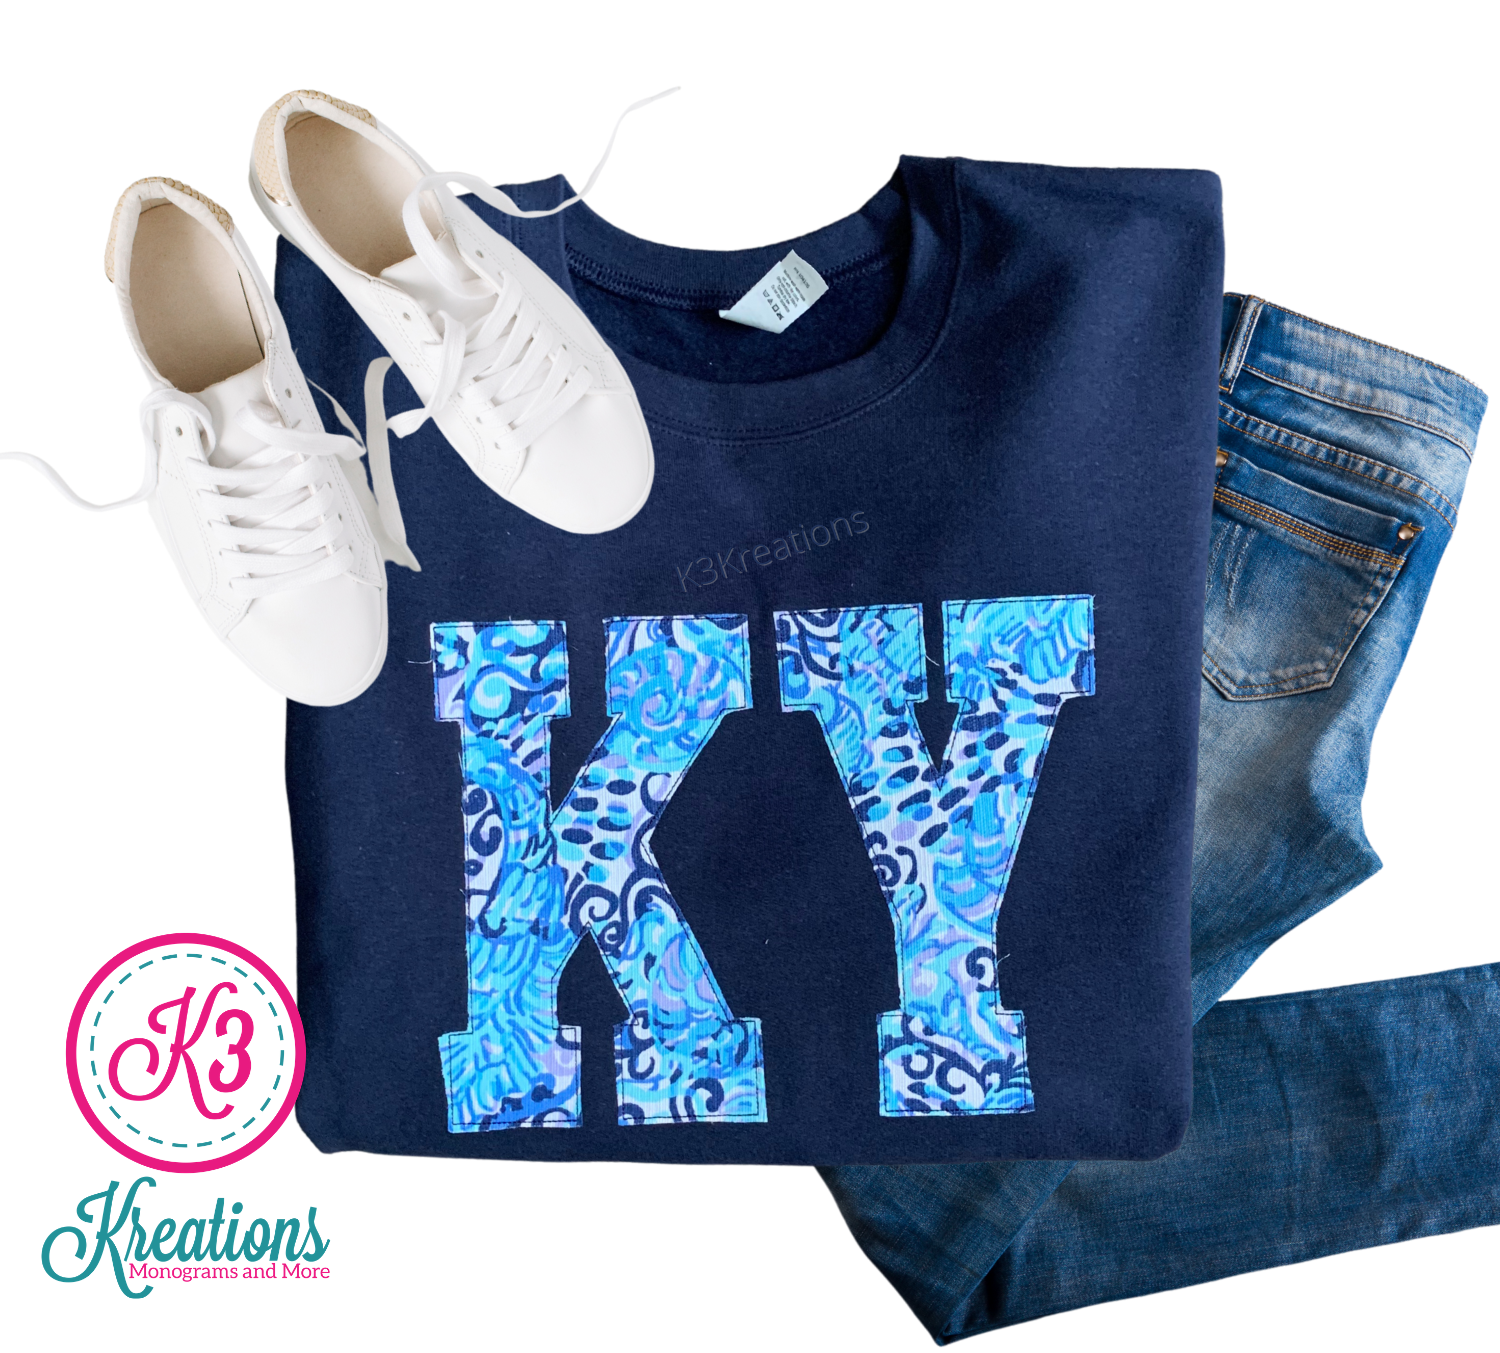 Adult KY Lilly Print Navy Crewneck Sweatshirt